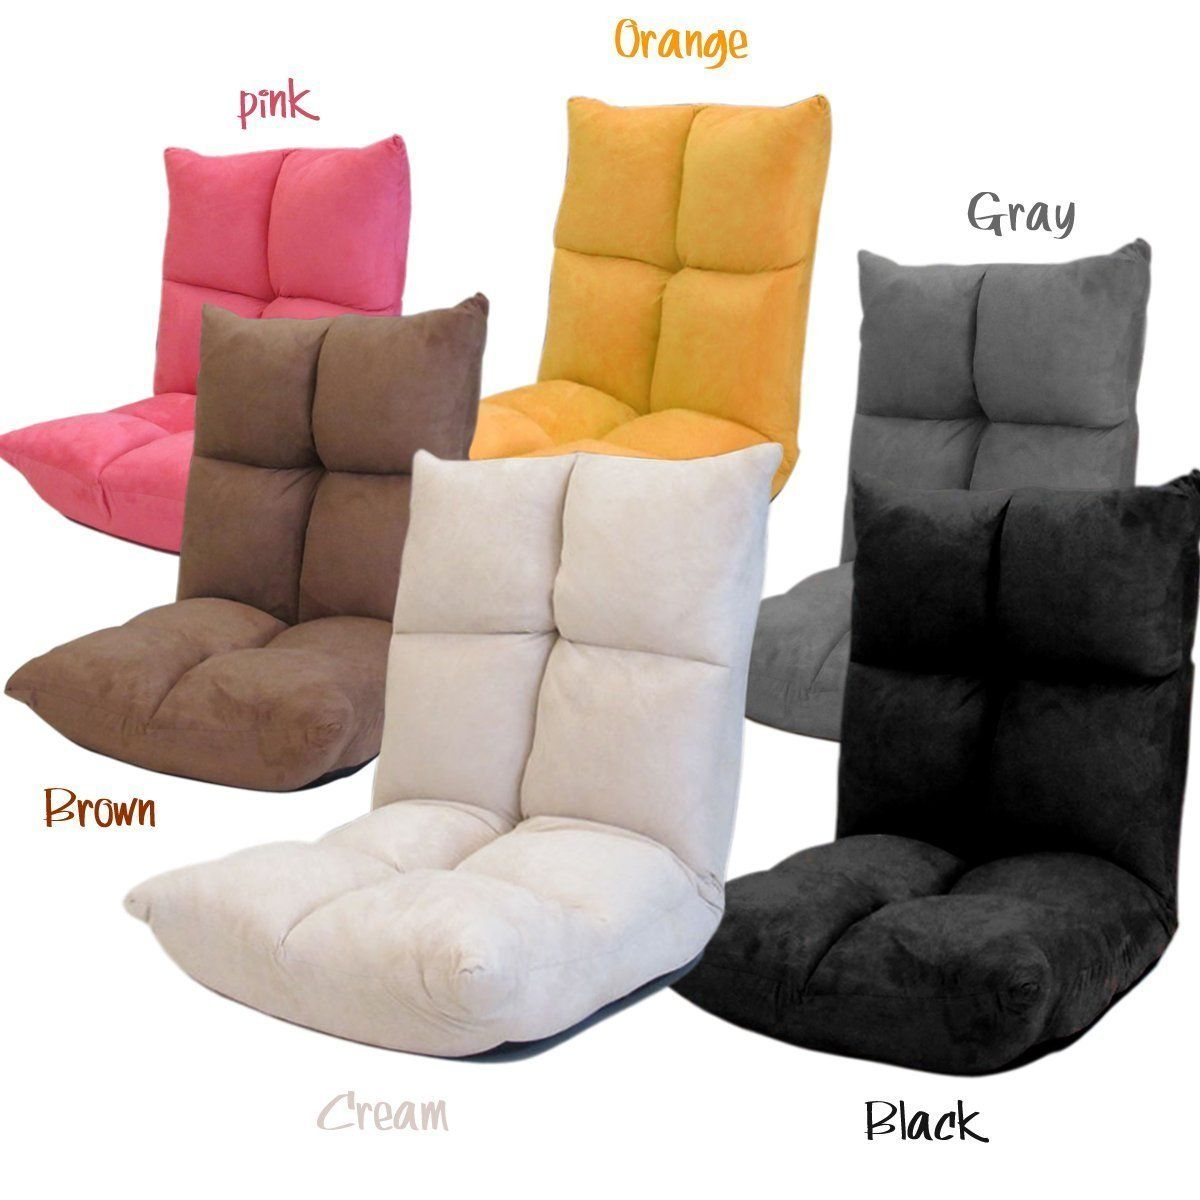 Futon Chair Recliners Floor Folding Chairs Living Room Gaming Home Kitchen